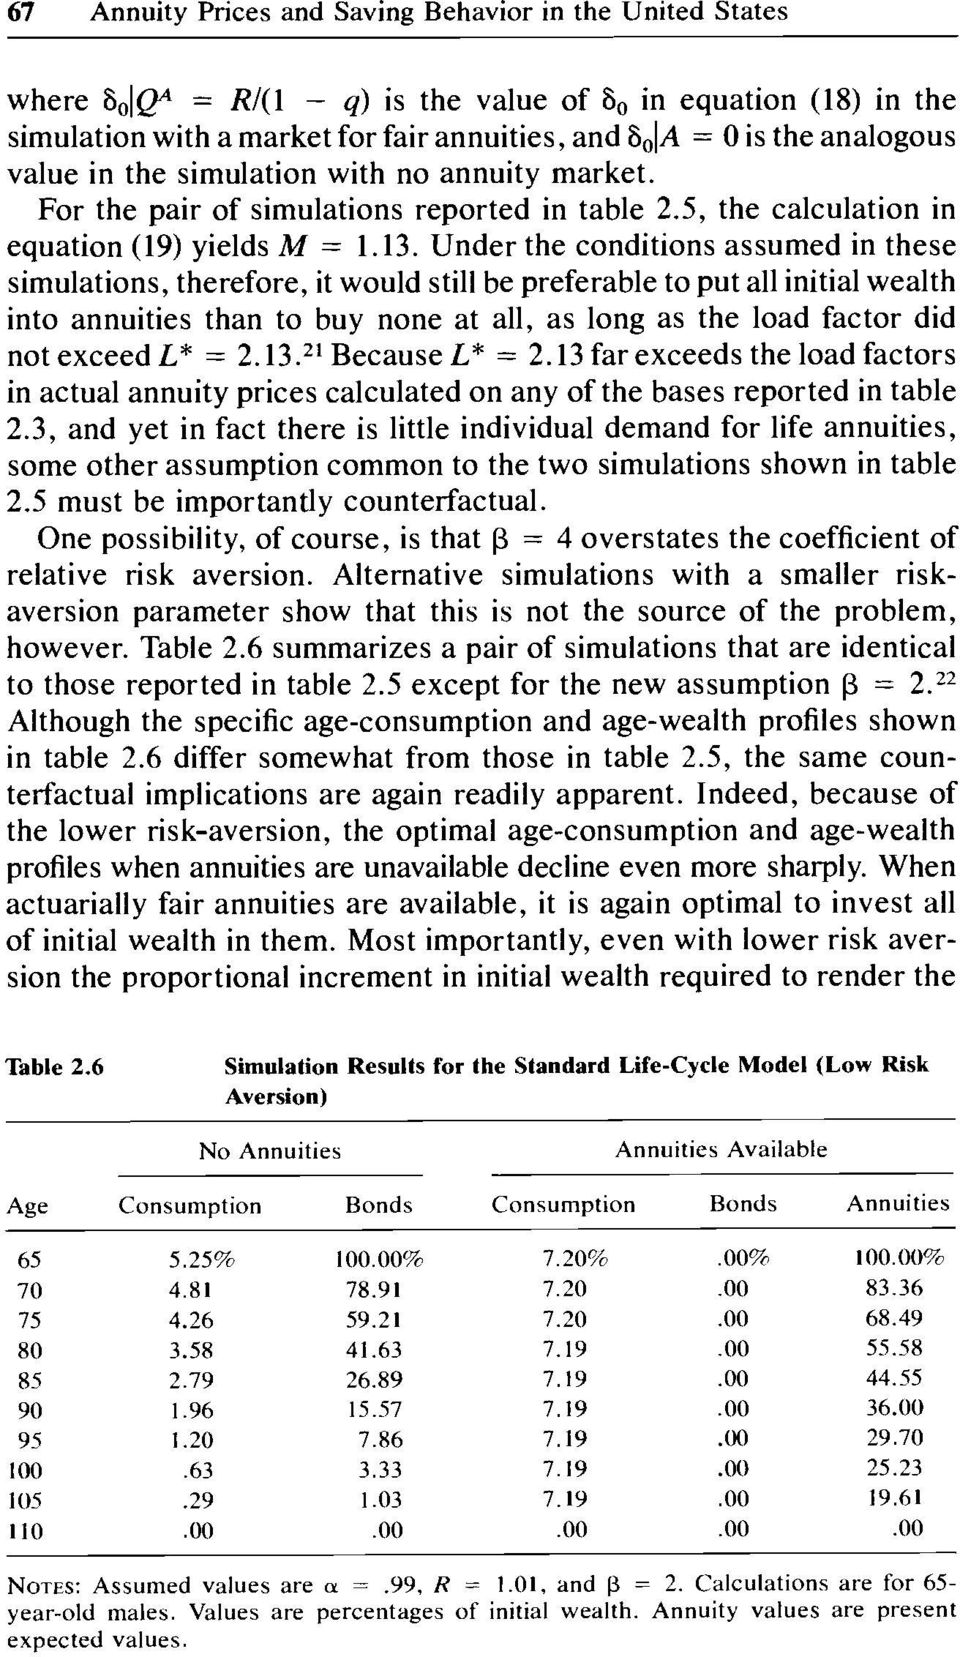 Under the conditions assumed in these simulations, therefore, it would still be preferable to put all initial wealth into annuities than to buy none at all, as long as the load factor did not exceed